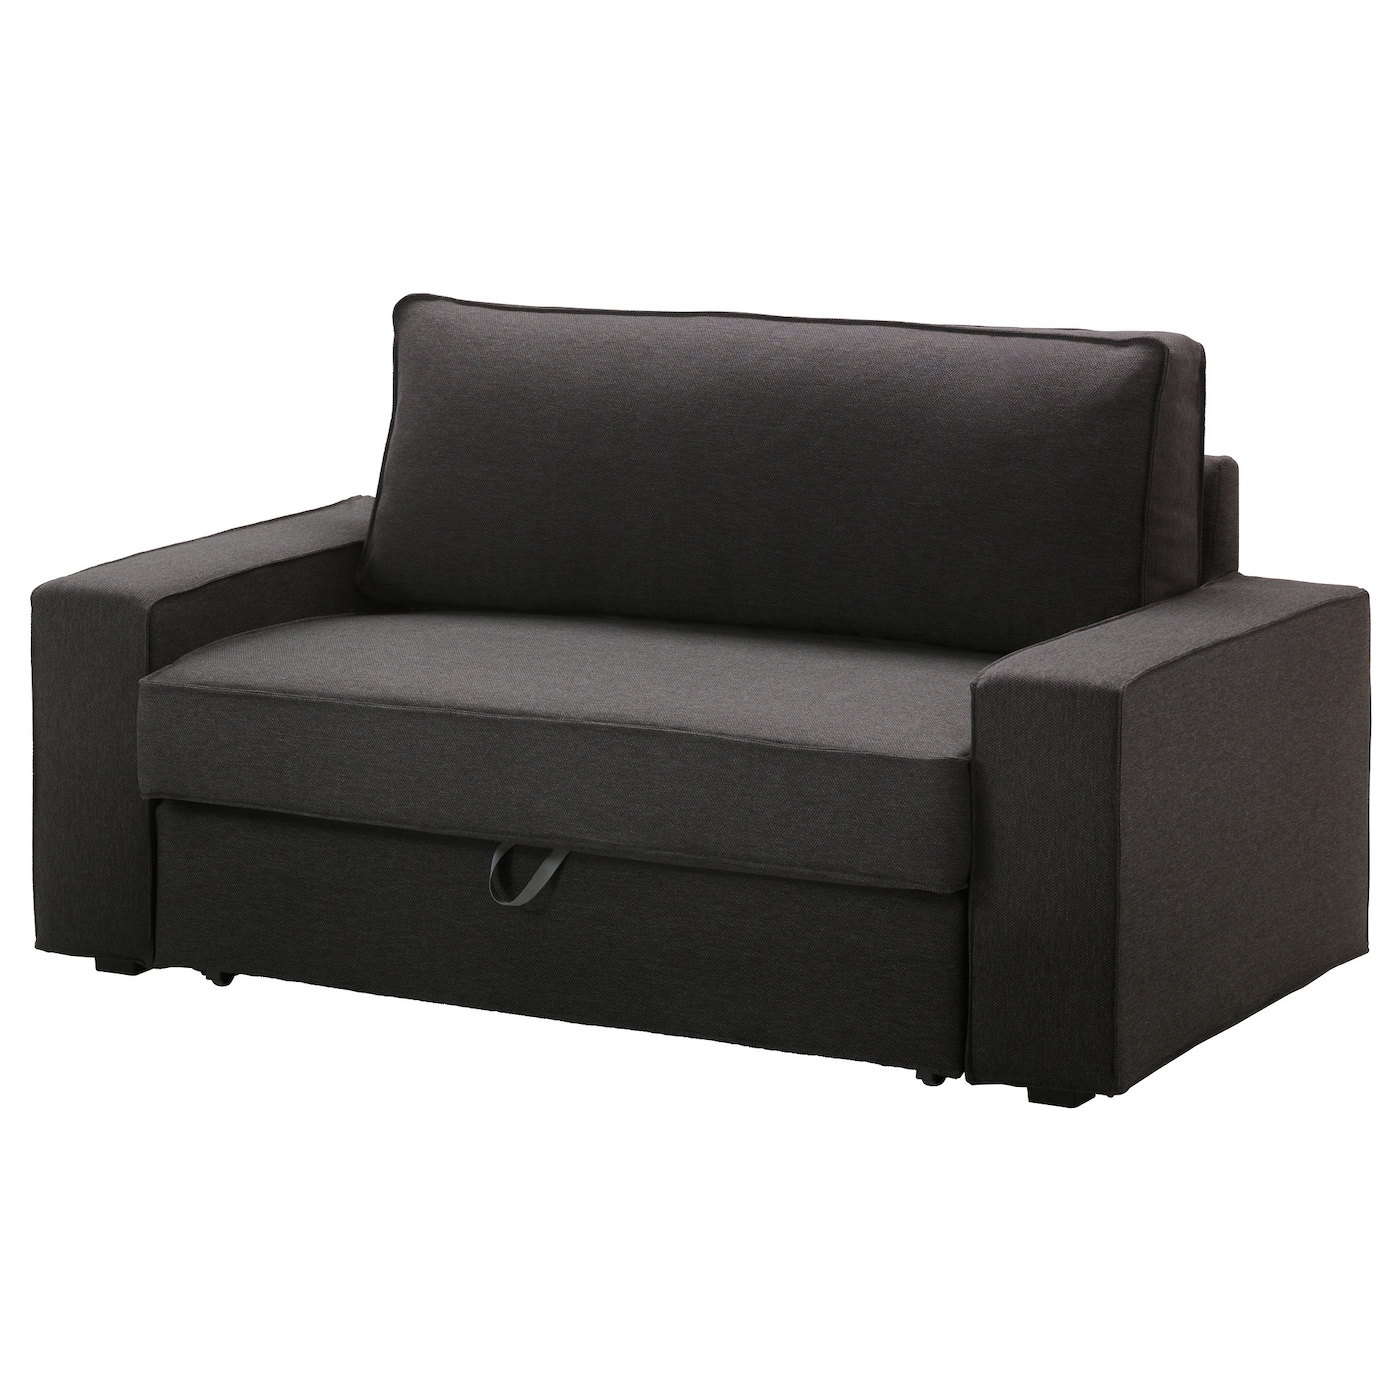 Vilasund two seat sofa bed dansbo dark grey ikea for Couch und sofa fürth